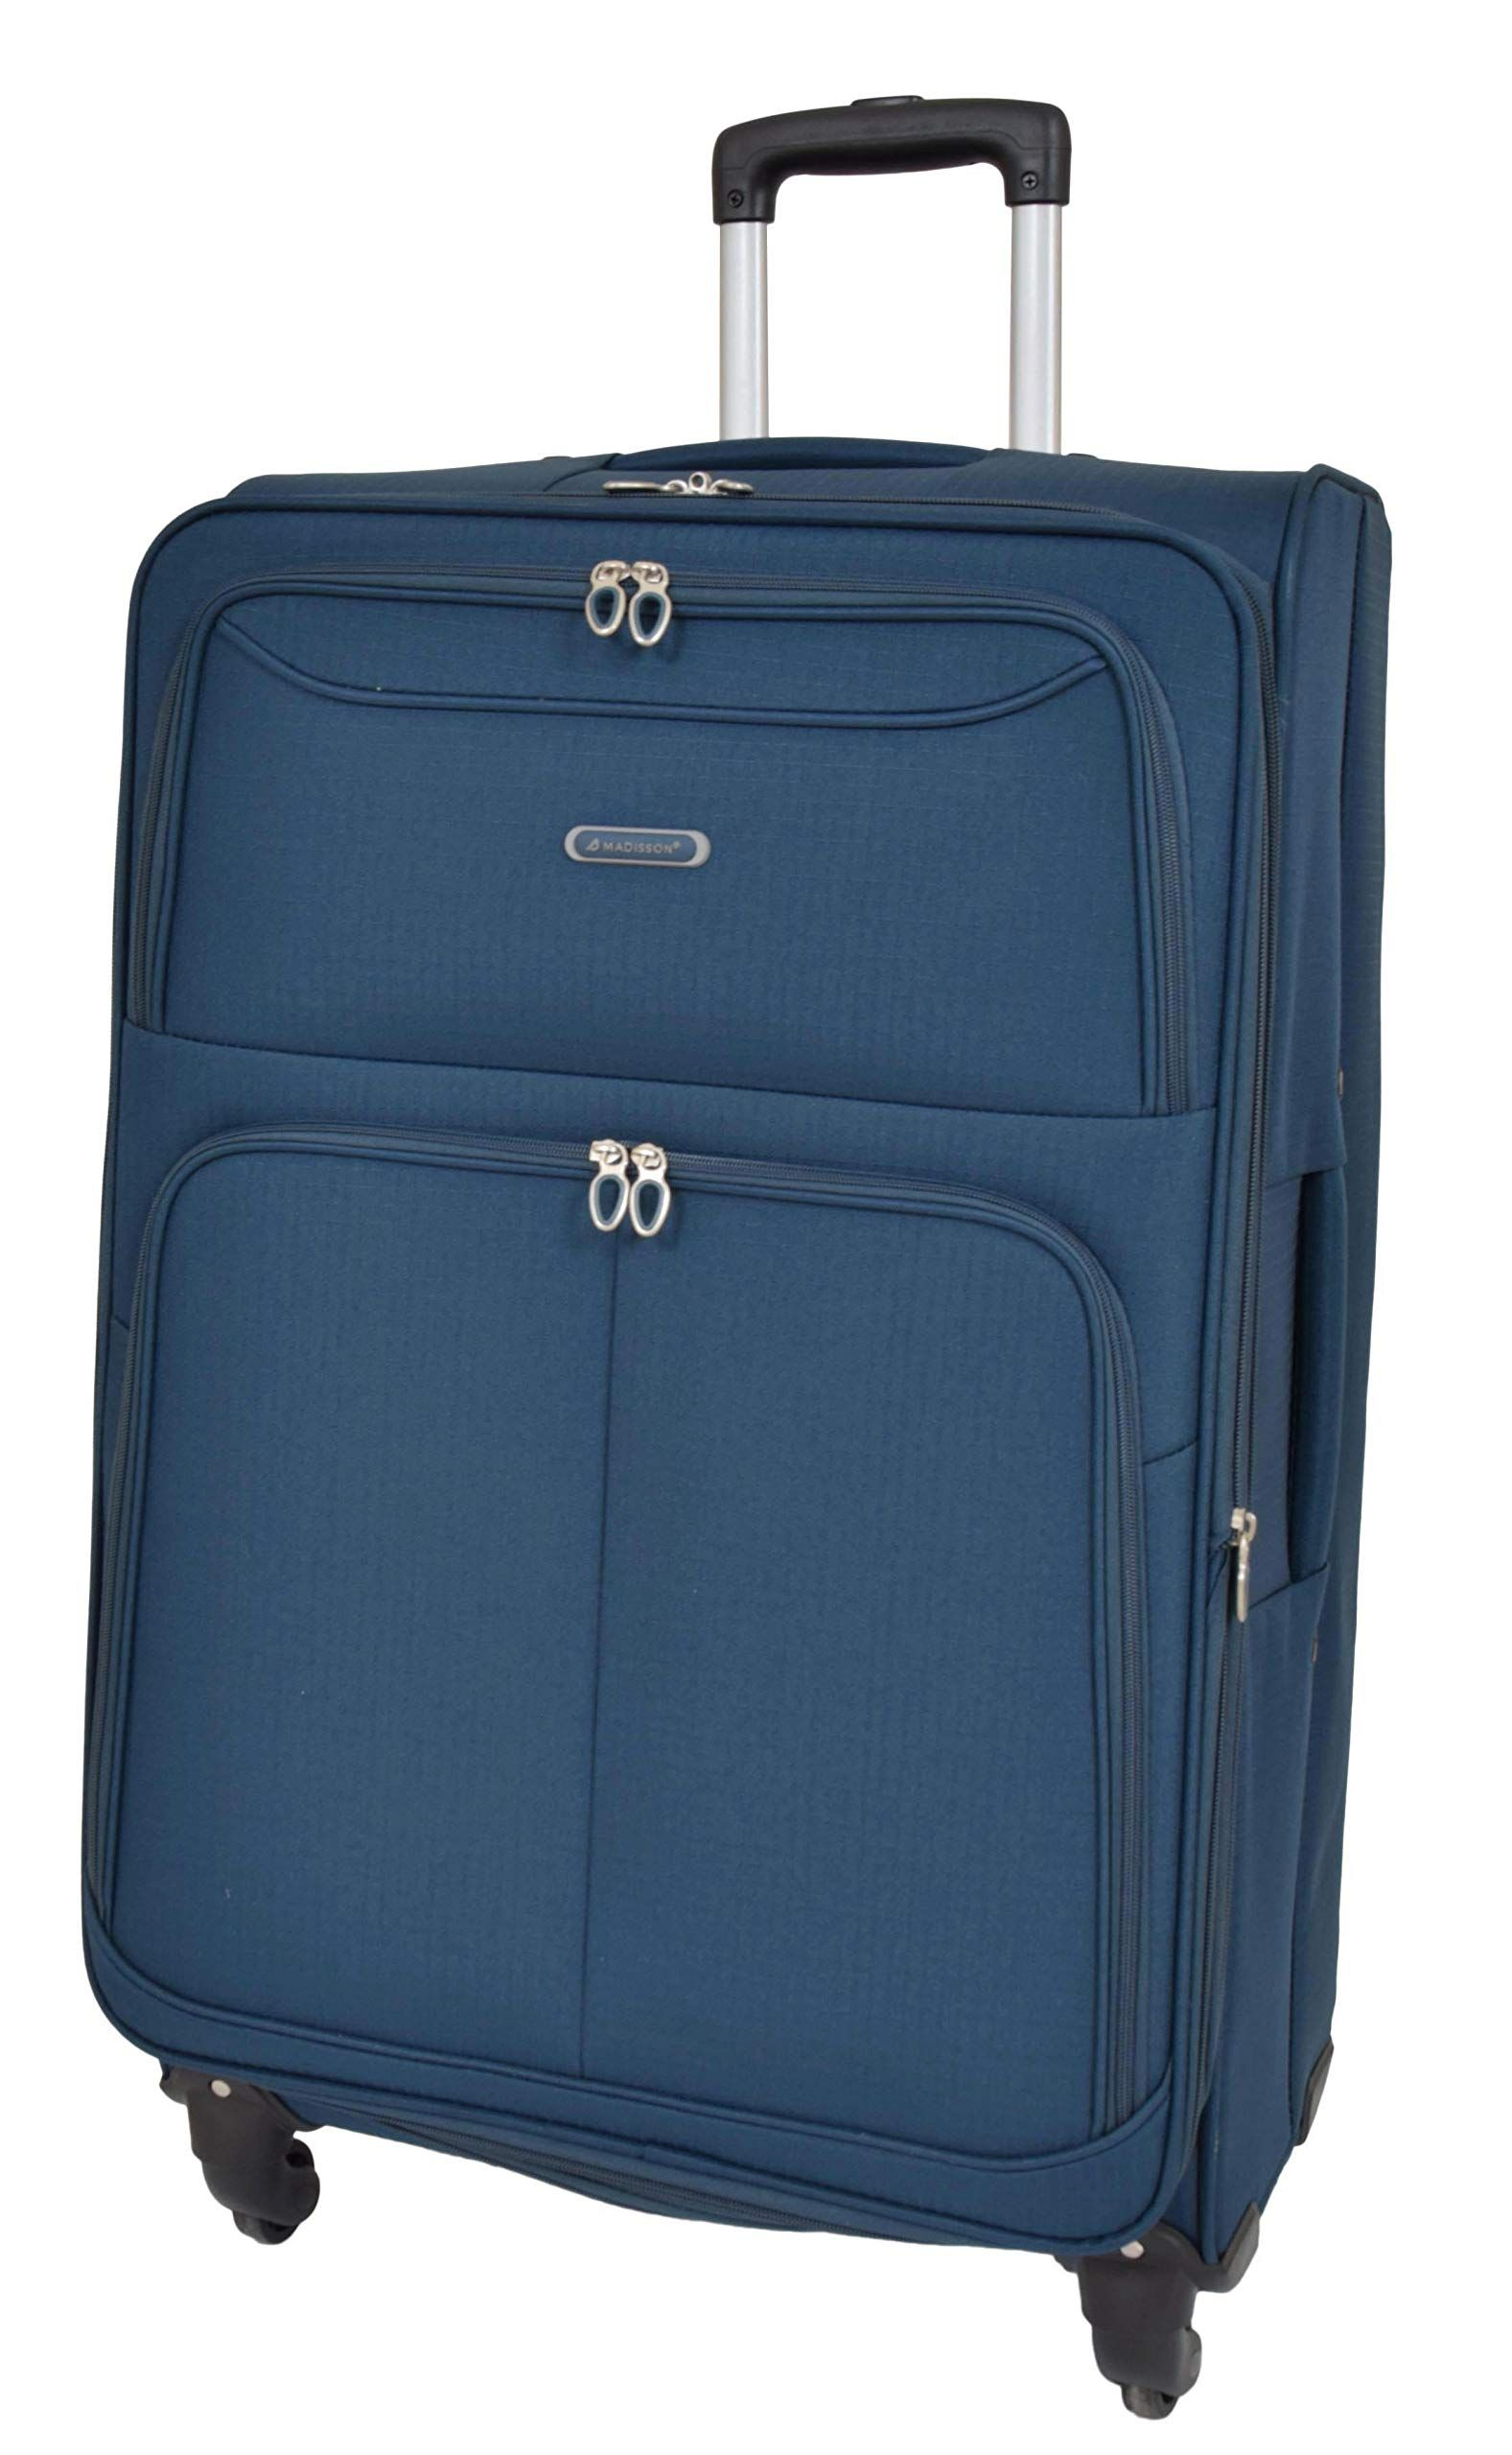 6849dc90db4a Travel Bags Soft Suitcases Blue 4 Wheel Luggage Lightweight ...